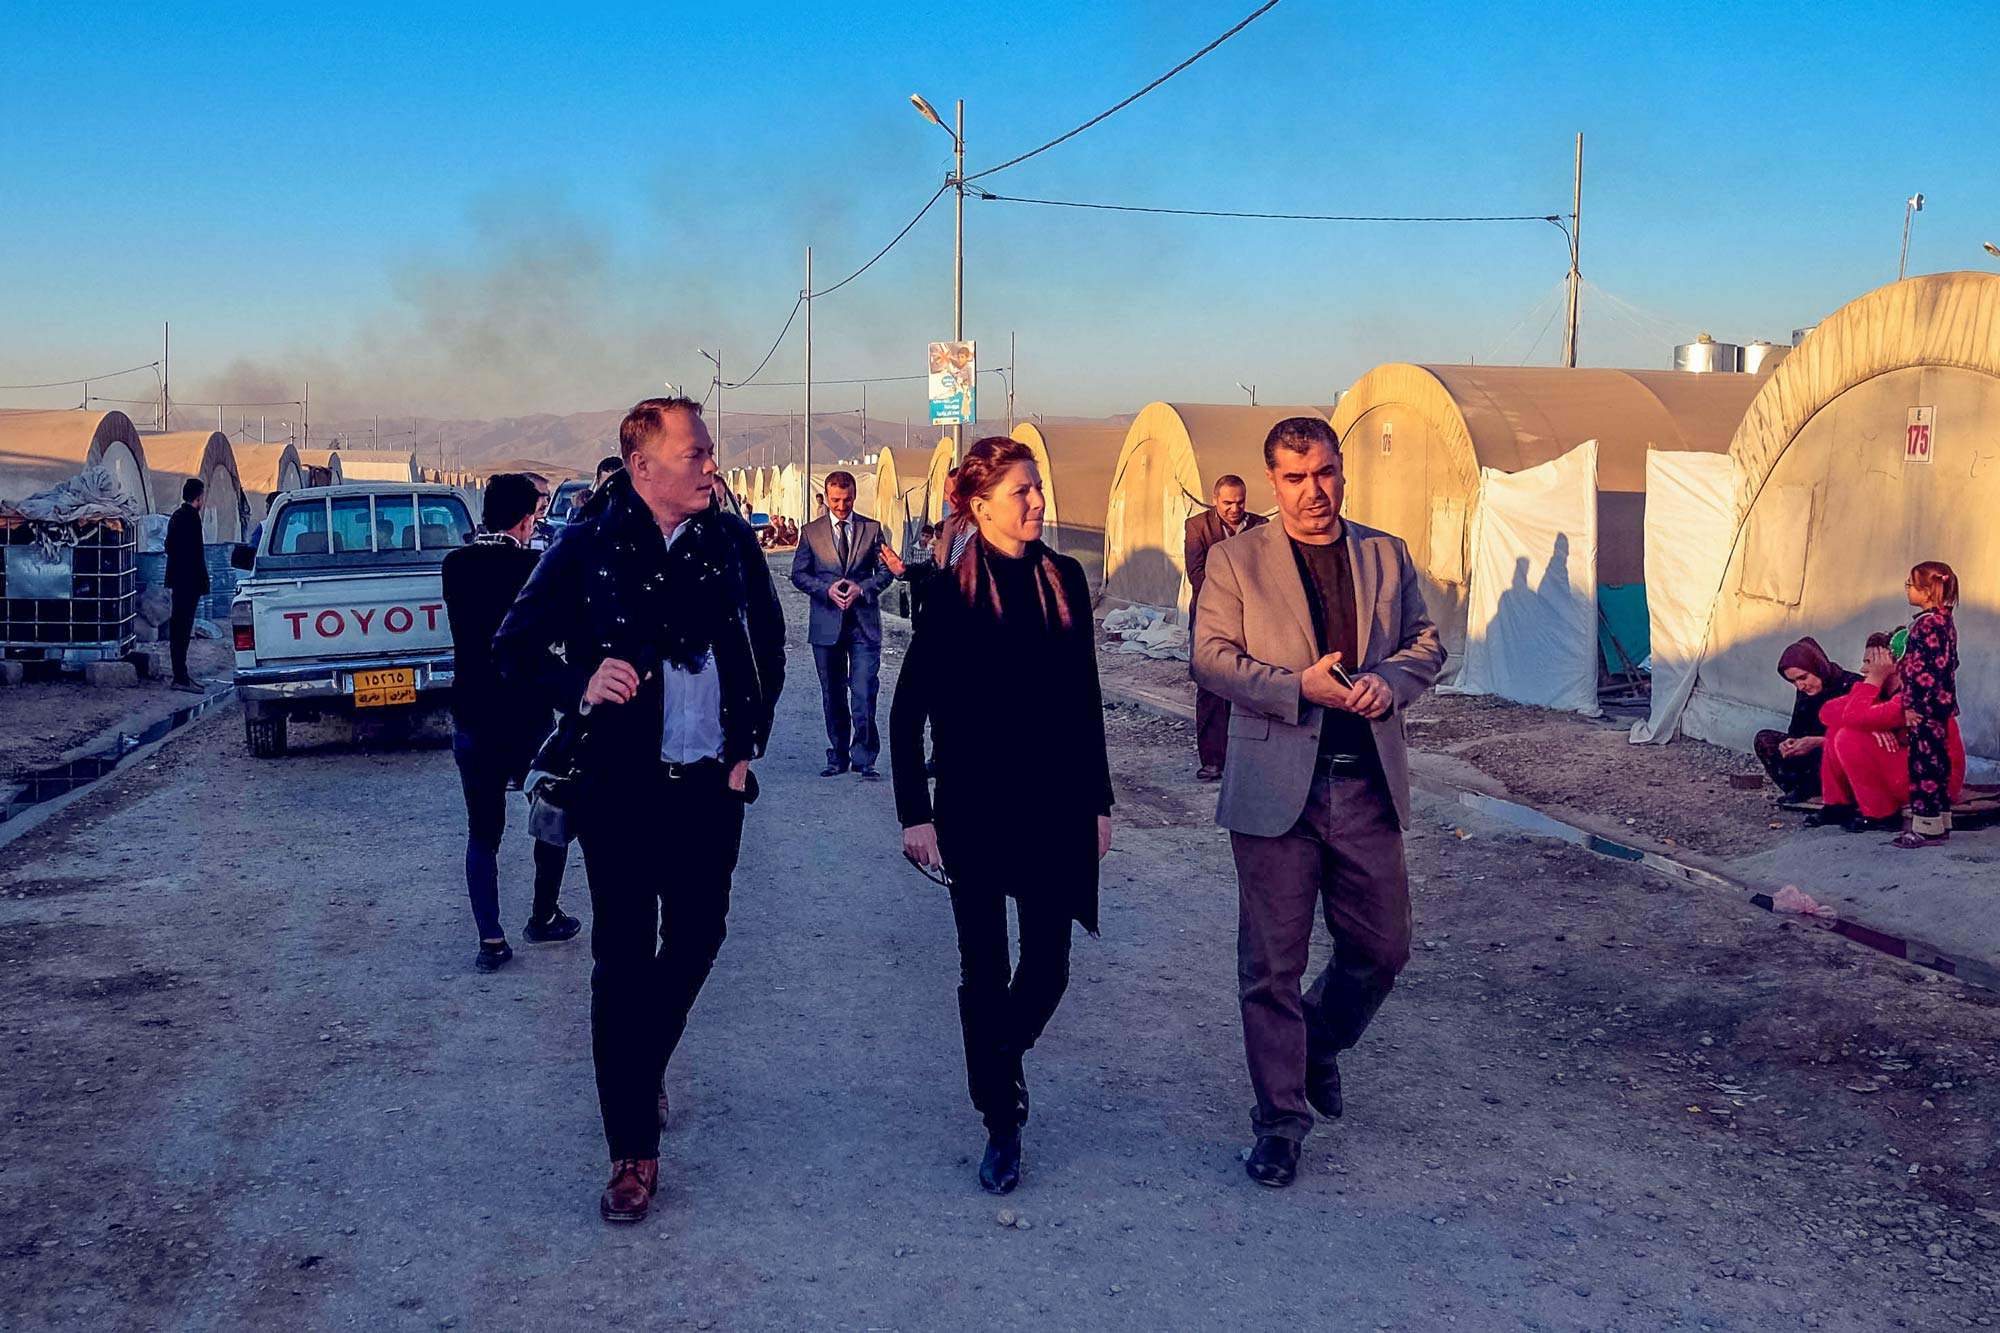 Alight Fund co-founders John Kluge, left, and Christine Mahoney walk with an interpreter while visiting a Syrian refugee camp in Iraqi Kurdistan.